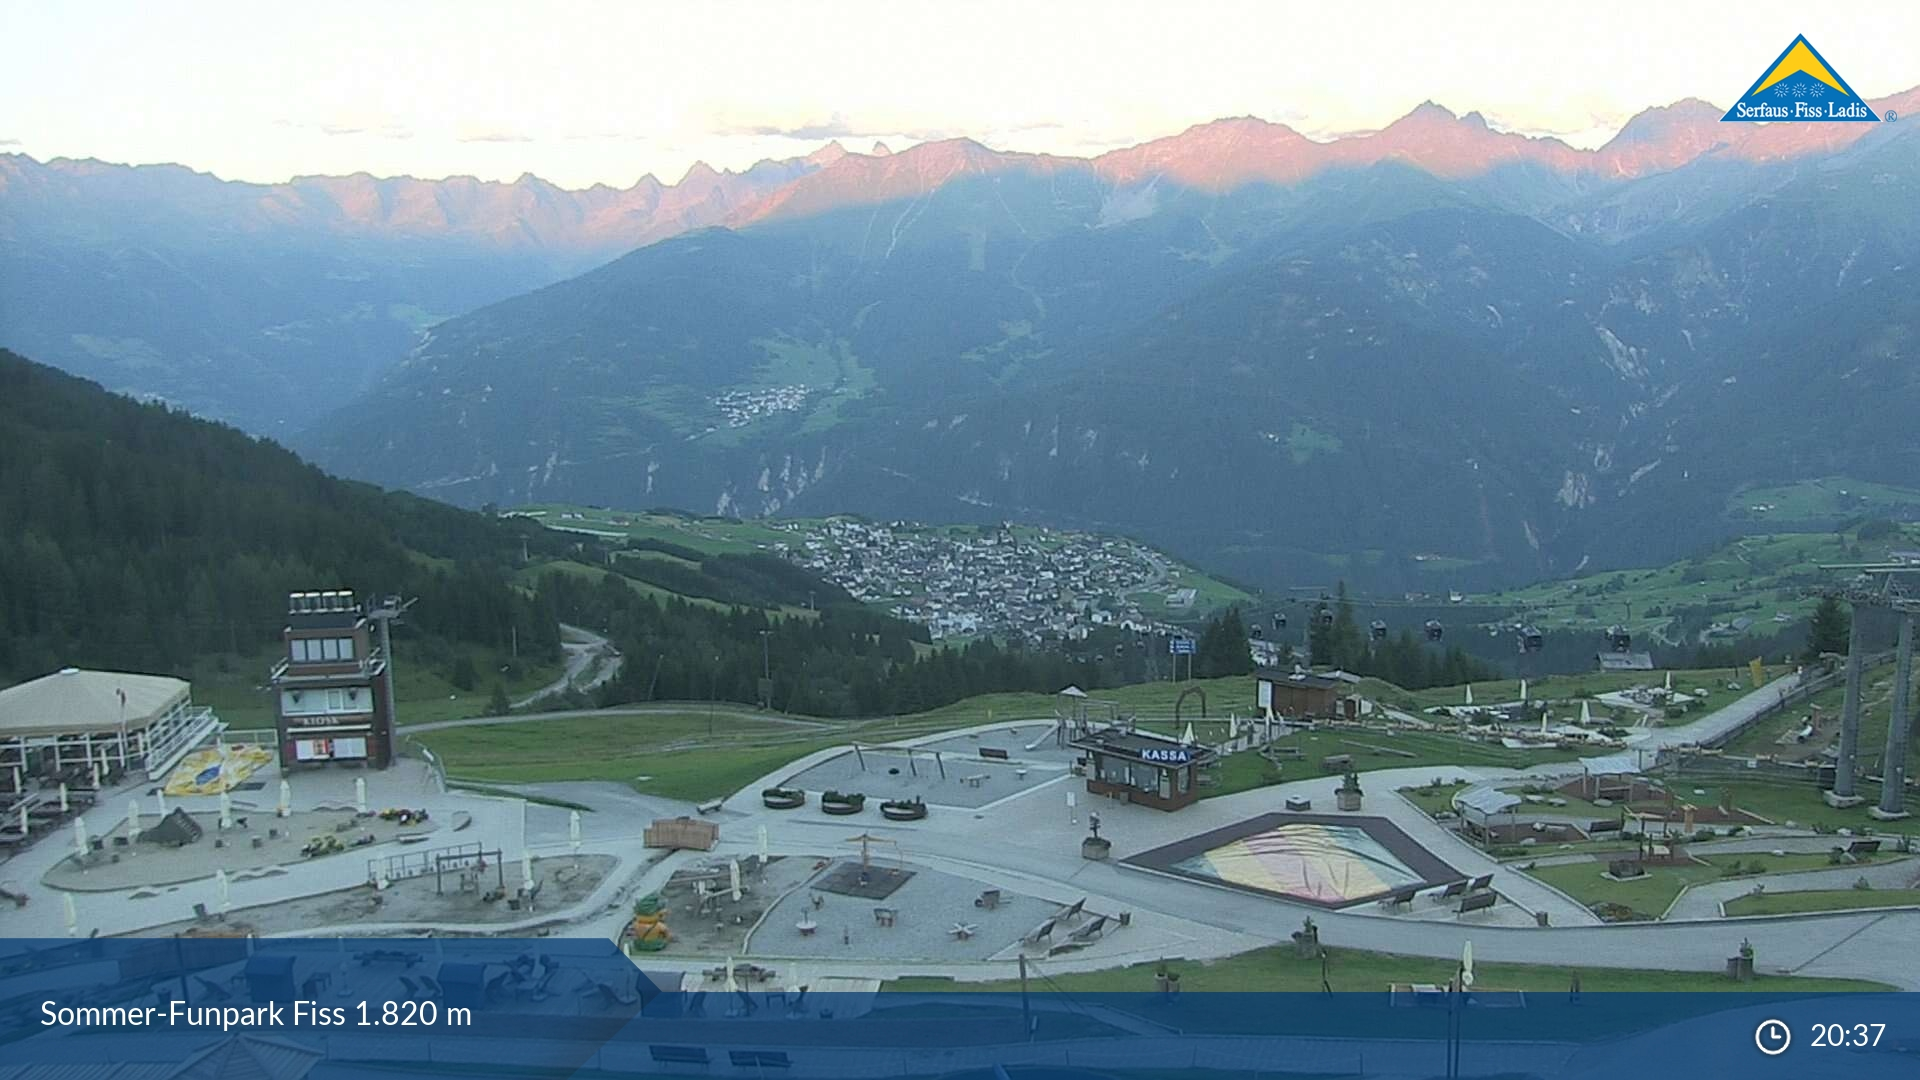 Fiss webcam - Möseralm